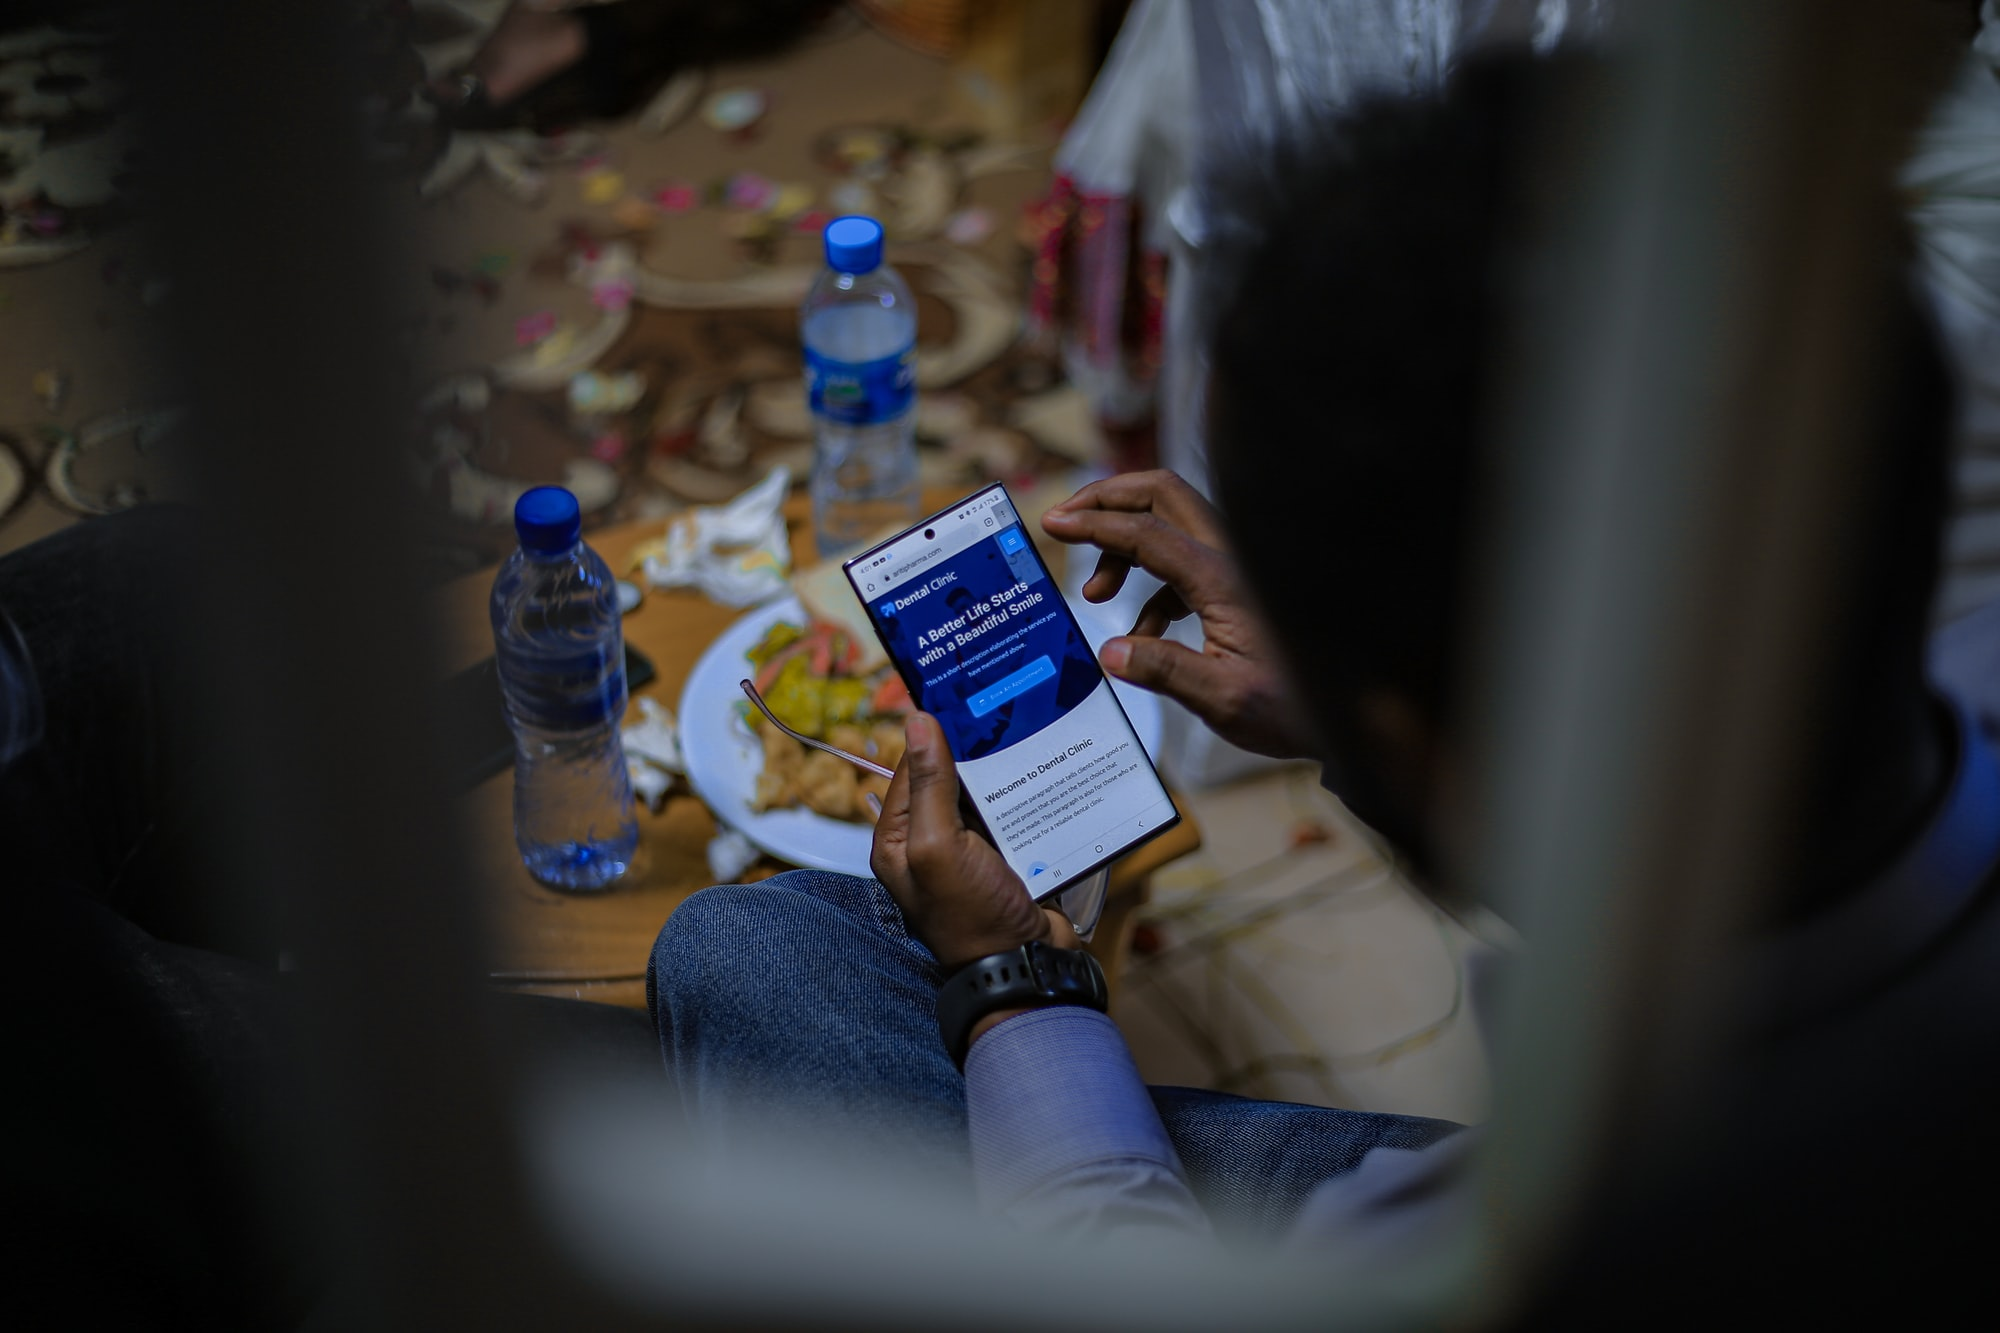 Ethiopia's smartphone shipments grew 9.8% in Q1 2021, buoyed by Chinese brands